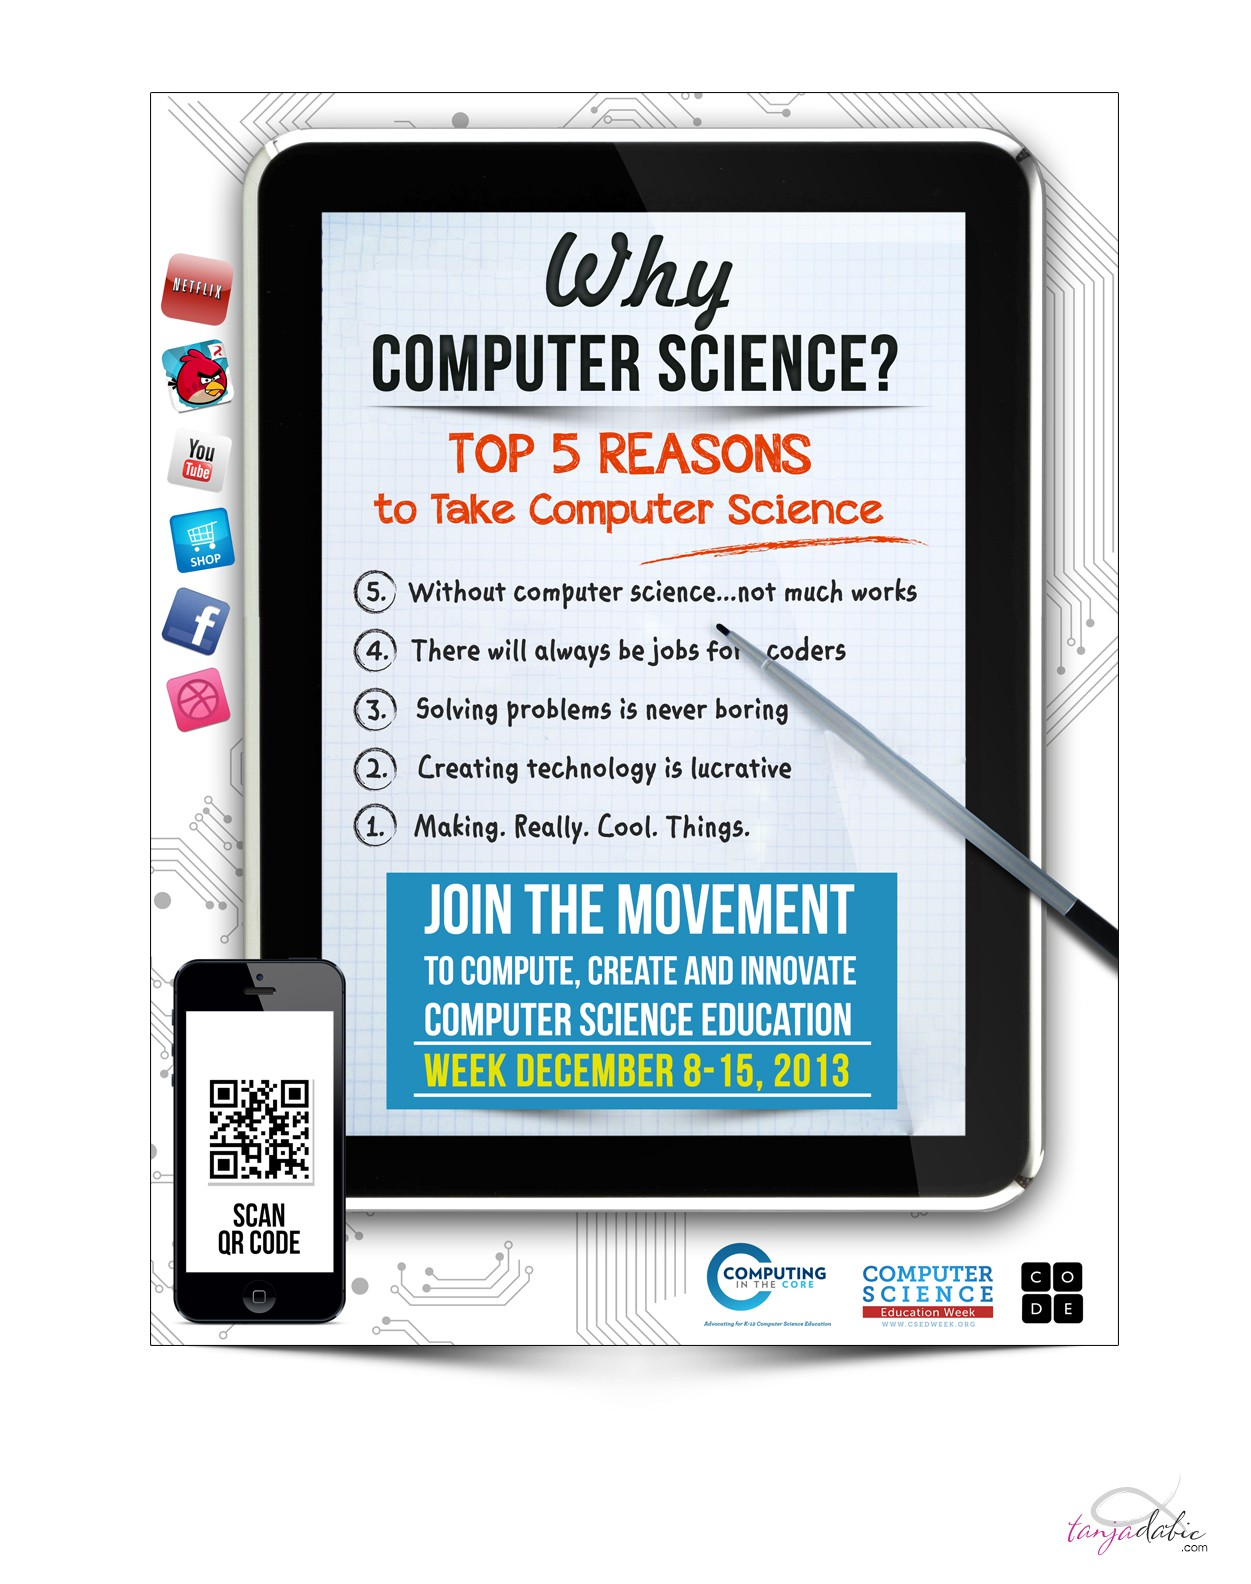 New signage wanted for Computer Science Education Week